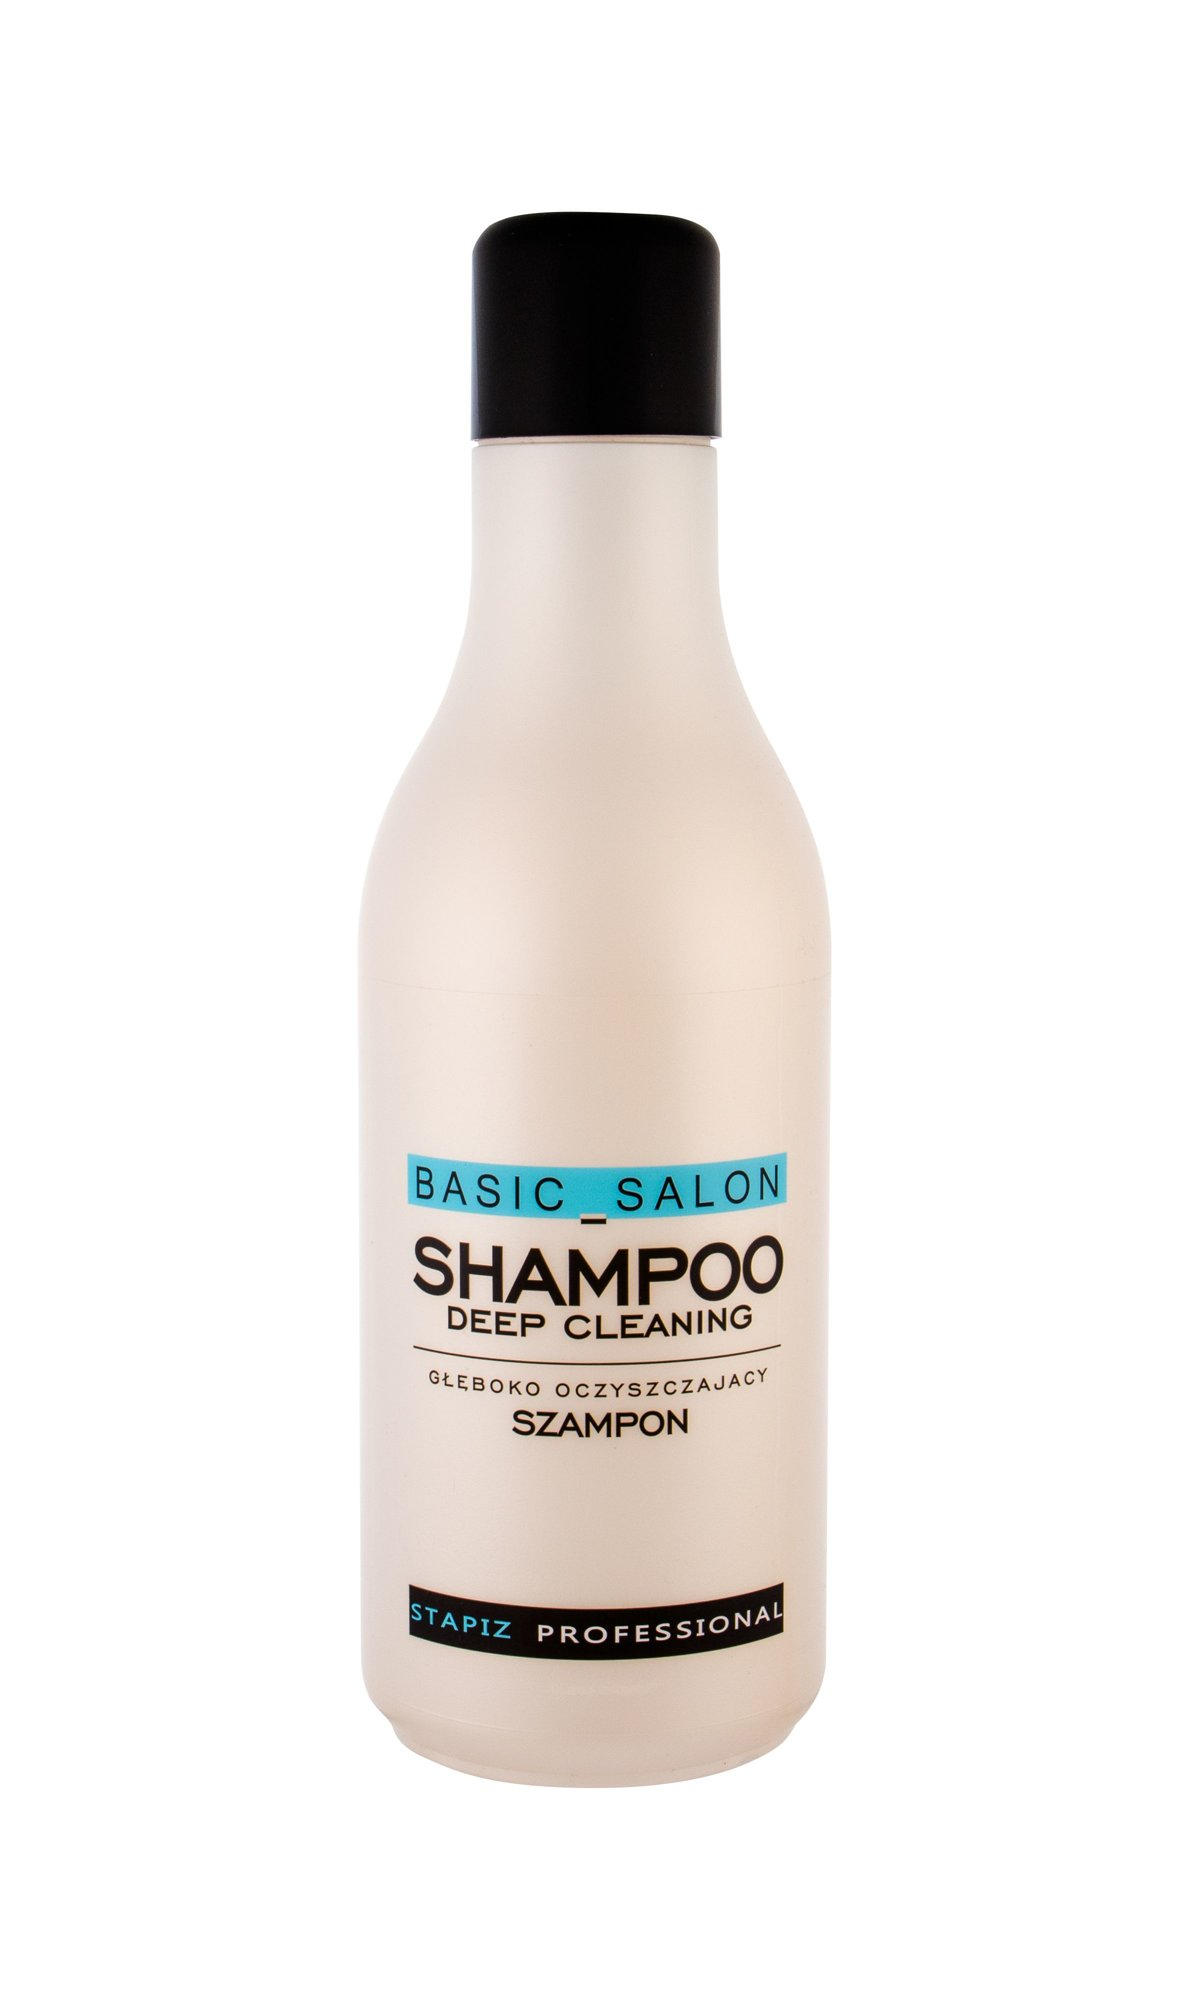 Stapiz Basic Salon Shampoo 1000ml